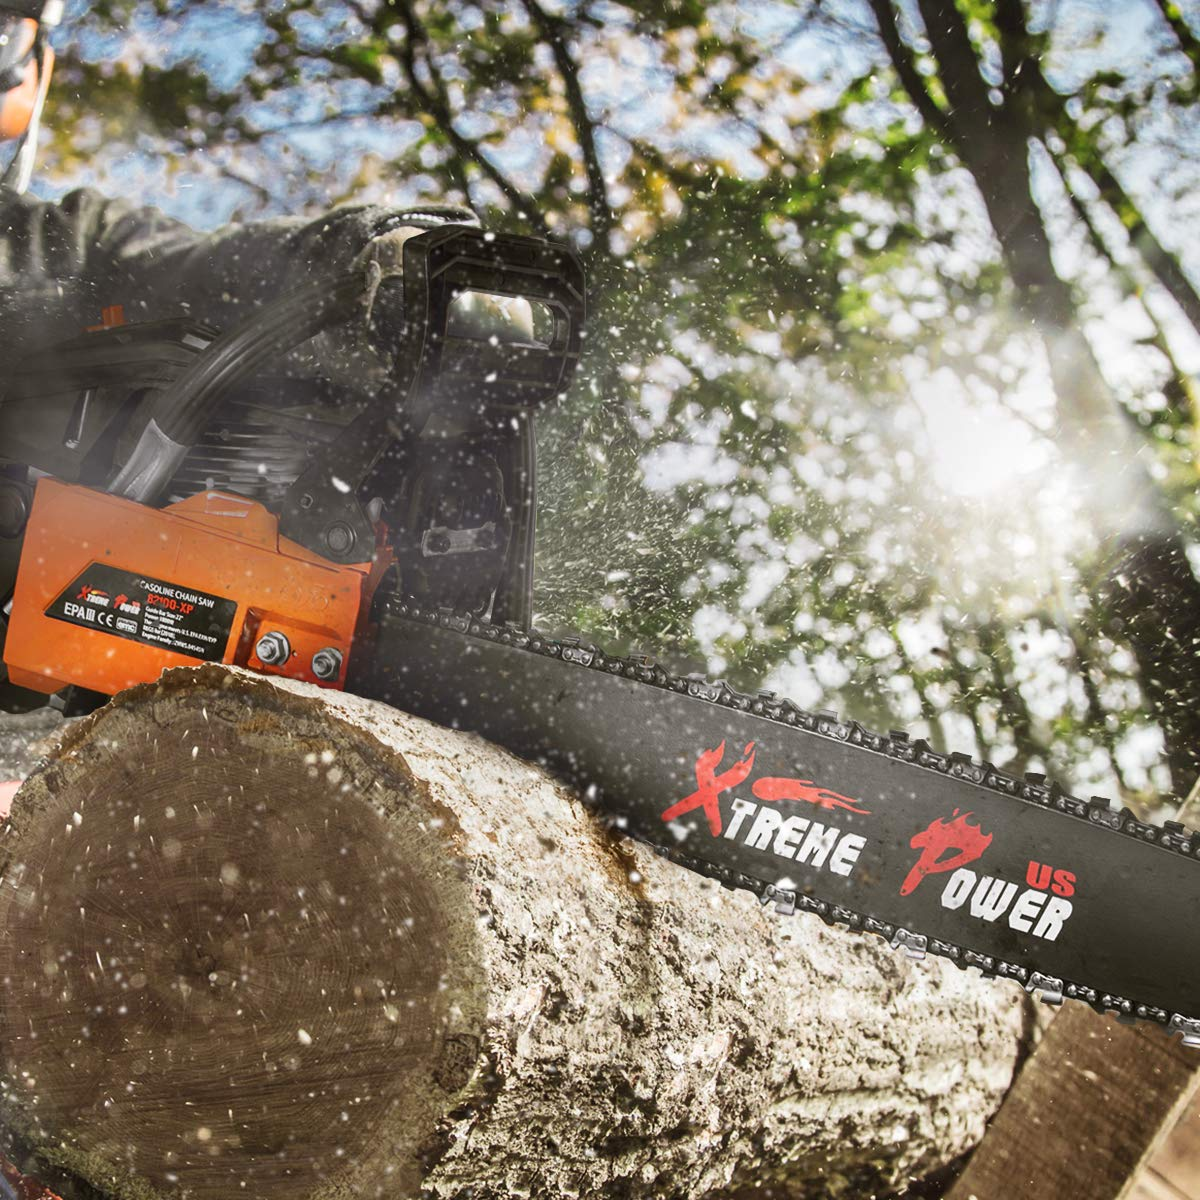 XtremepowerUS 82100-XP Chainsaws product image 2